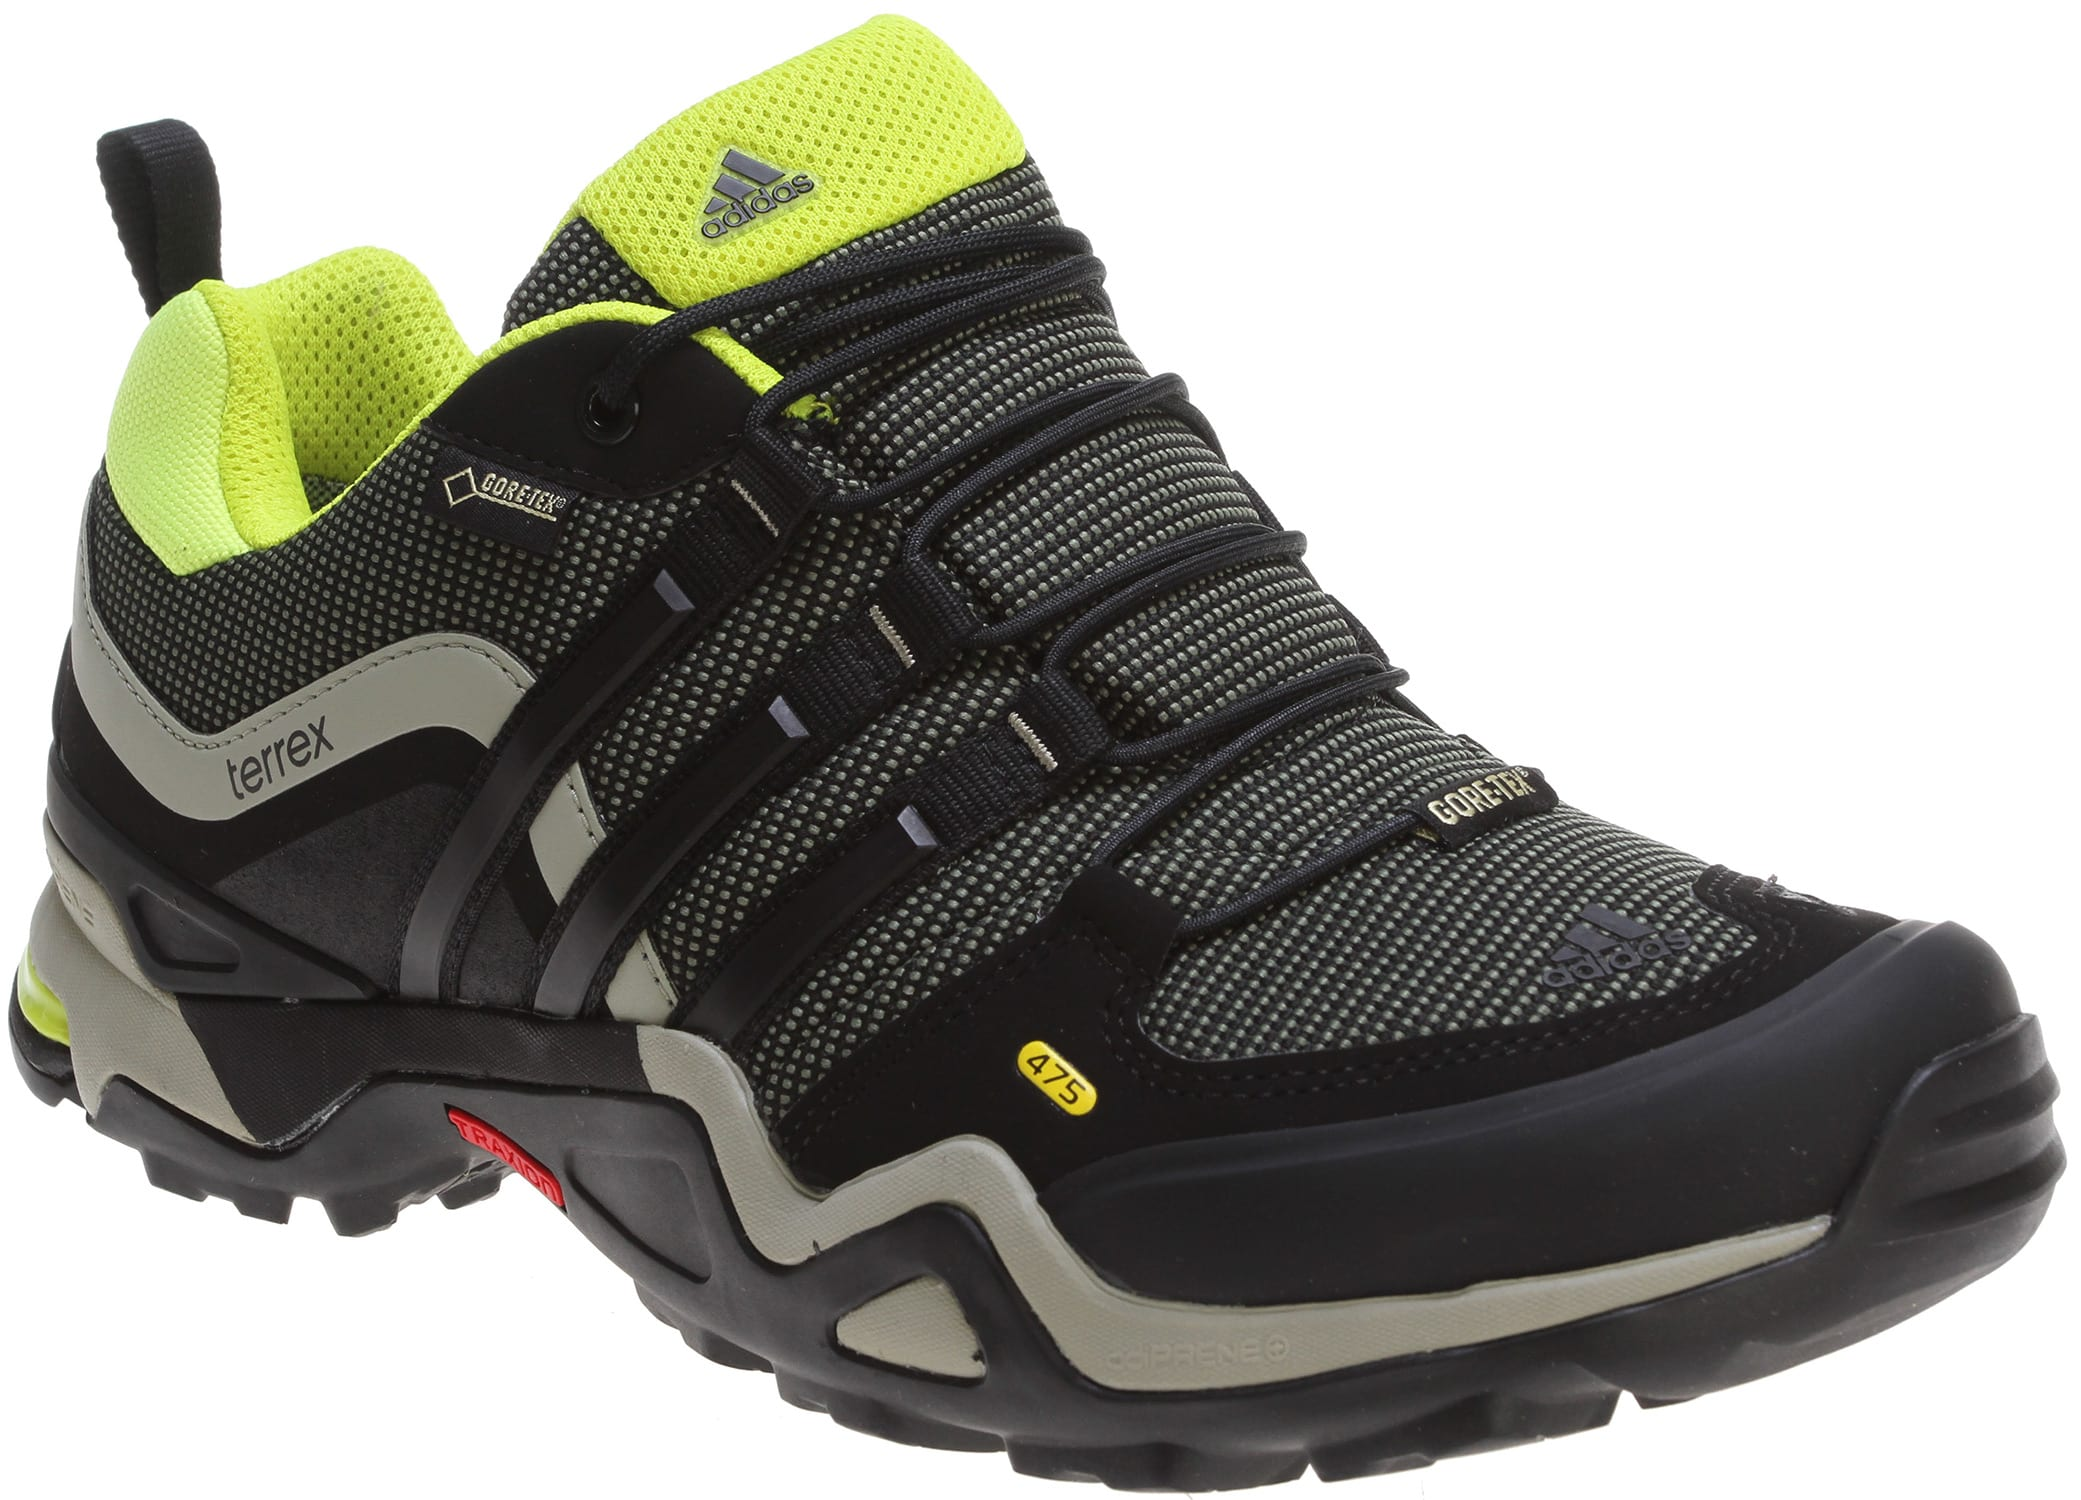 on sale adidas terrex fast x gtx hiking shoes up to 50 off. Black Bedroom Furniture Sets. Home Design Ideas